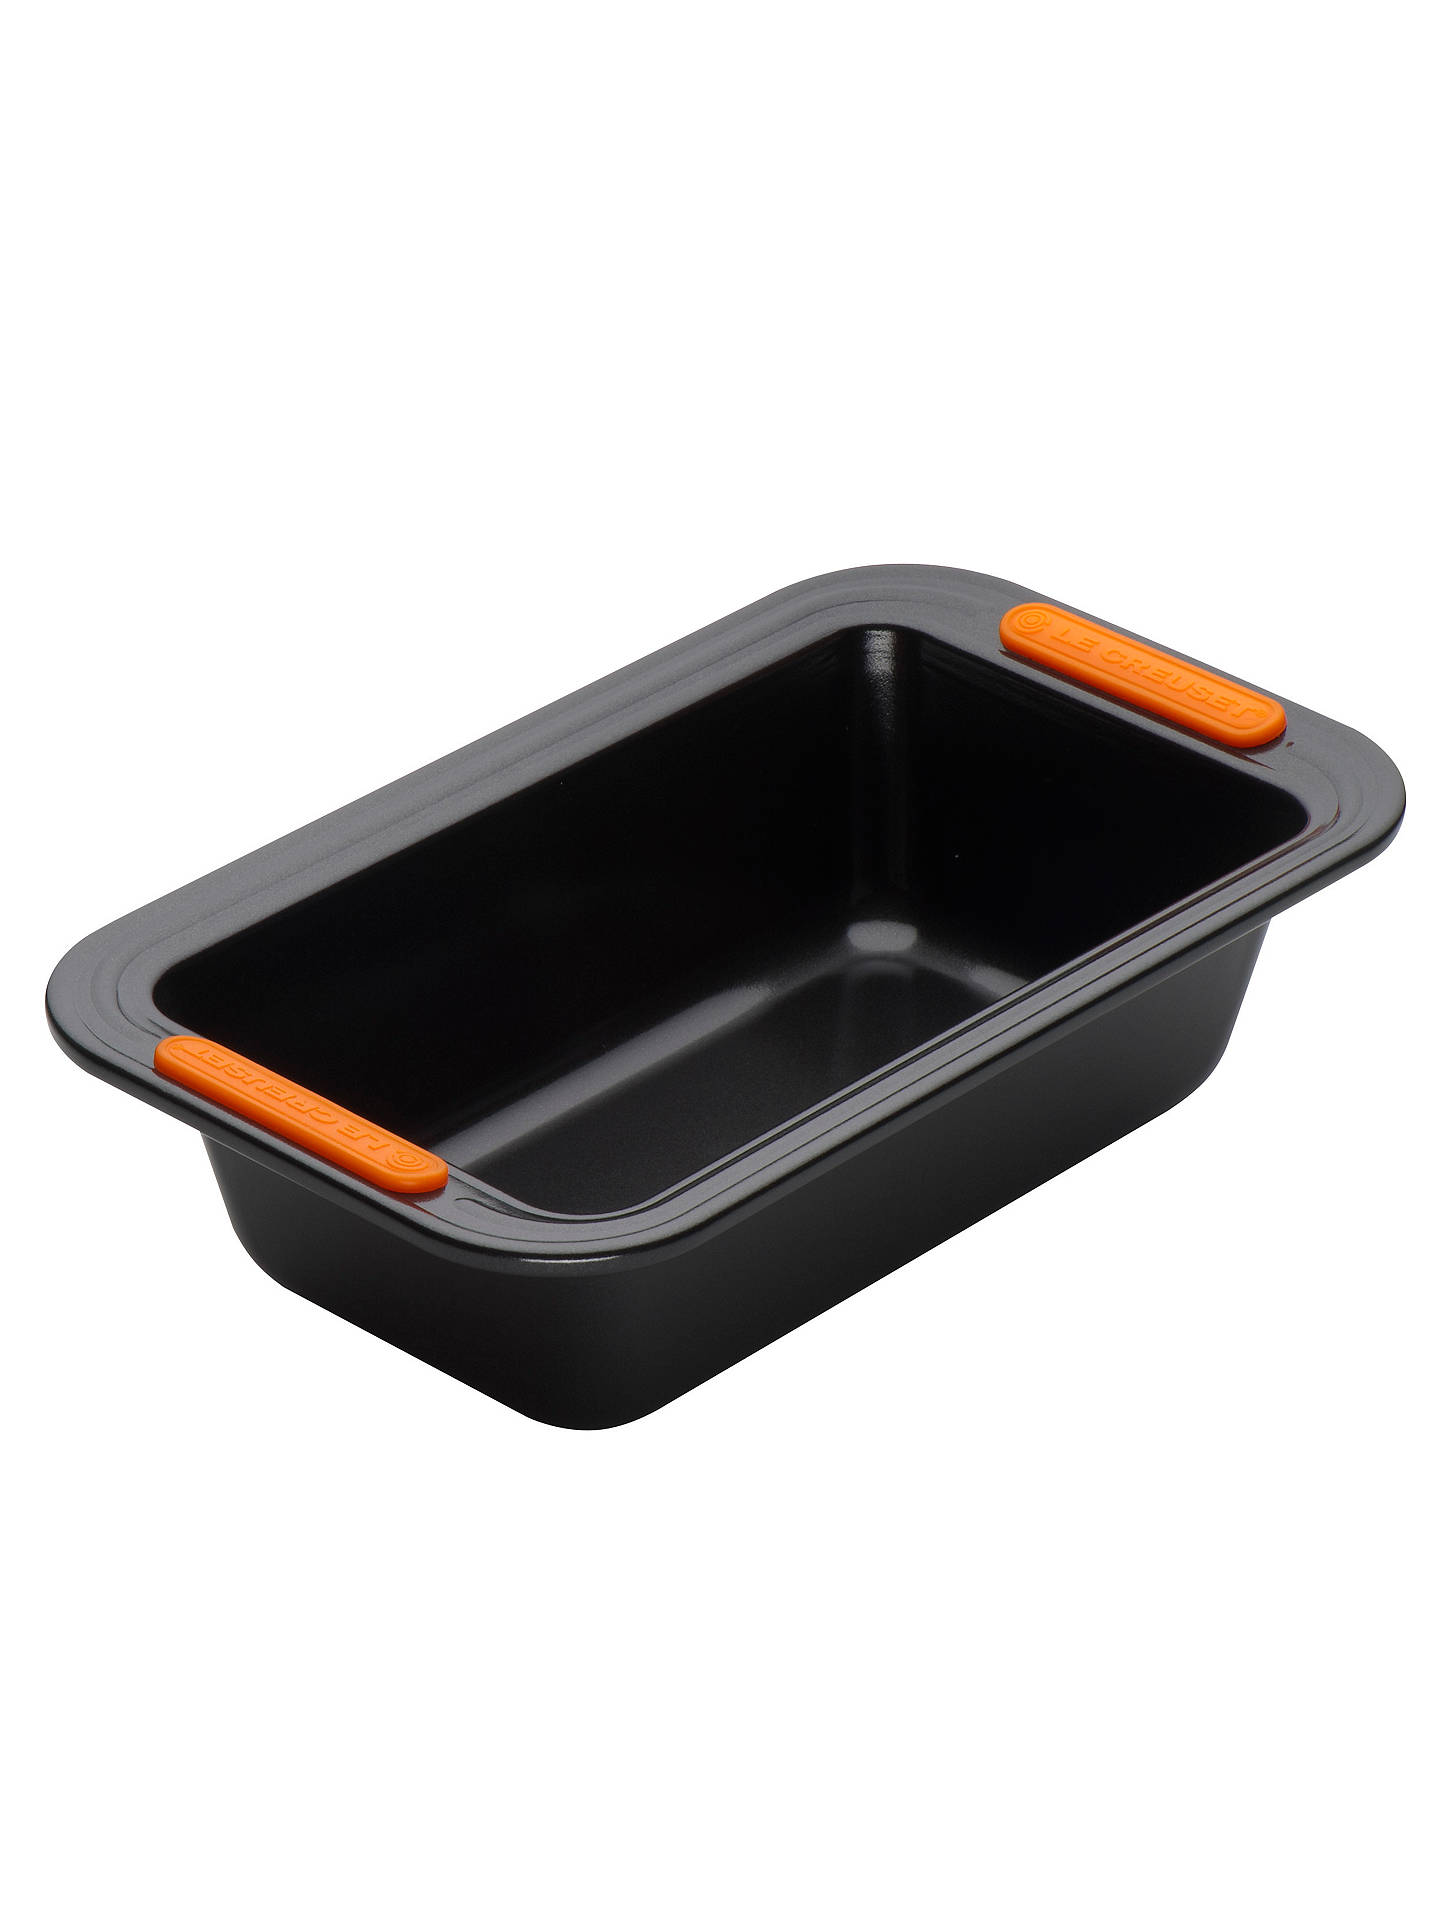 Le Creuset Non Stick Loaf Tin, 2lb, Black by Le Creuset